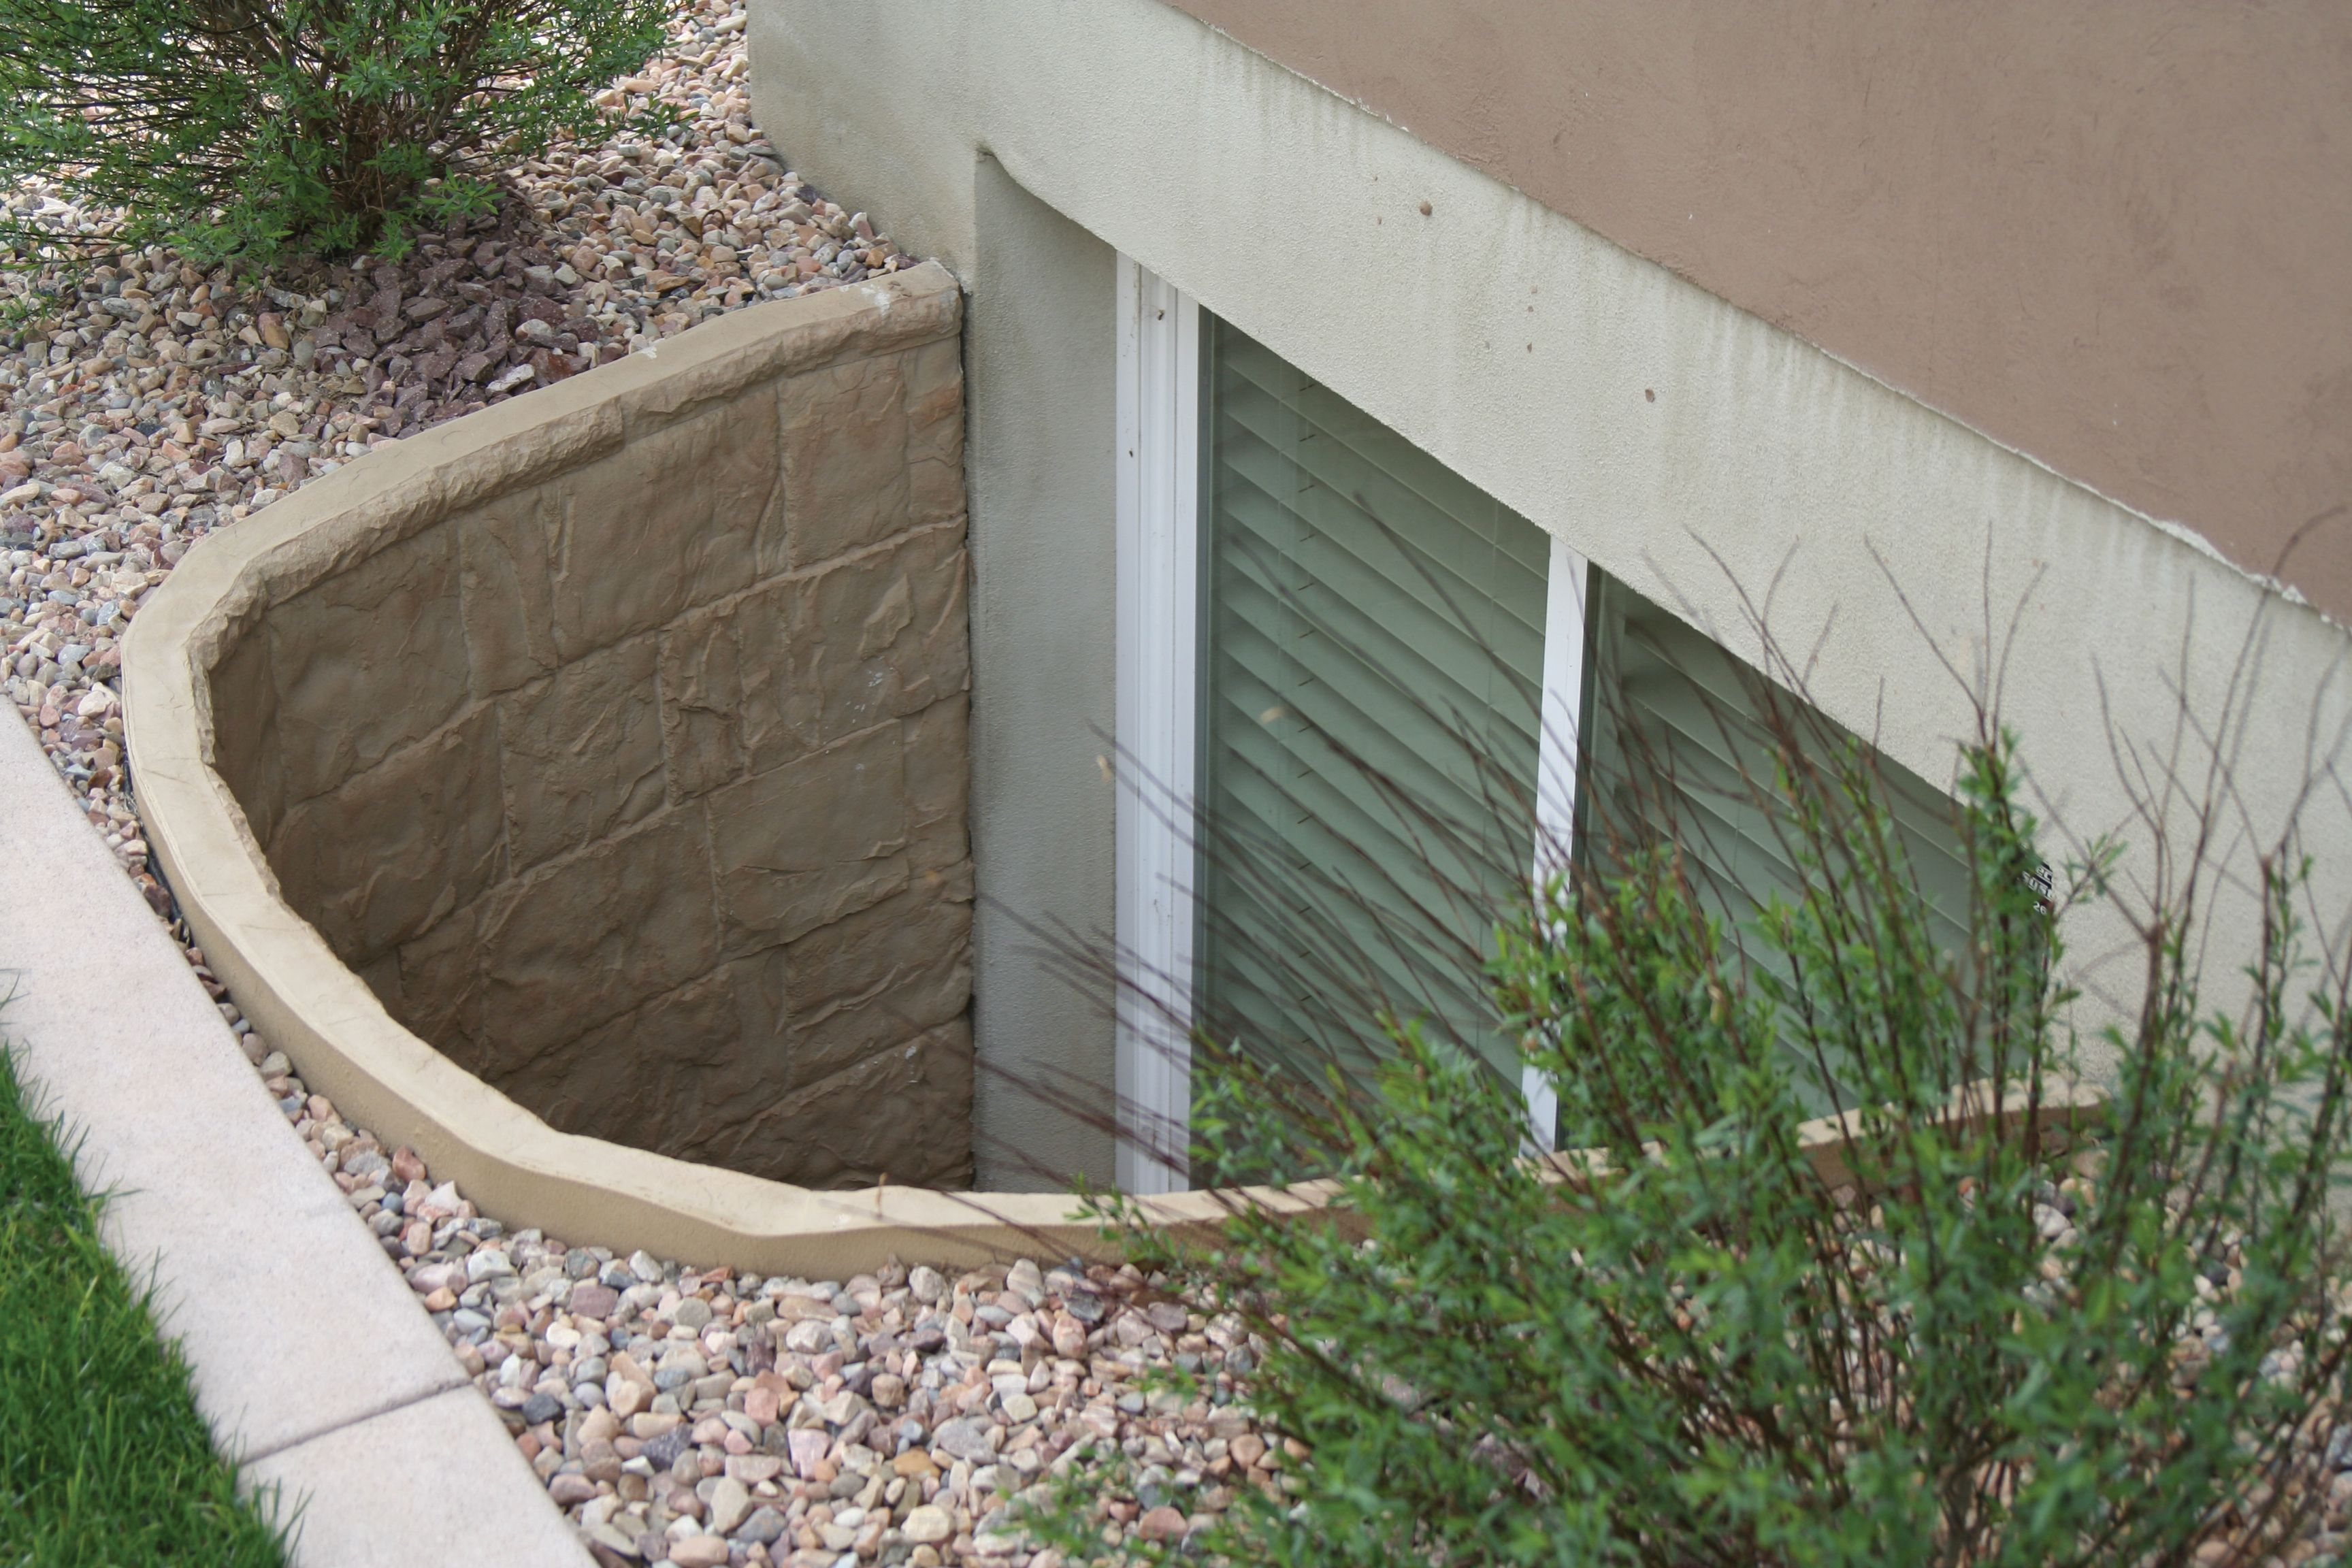 Basement windows more window ideas egress window basements windows - Find This Pin And More On Basement Egress By Basementsysusa Egress Windows